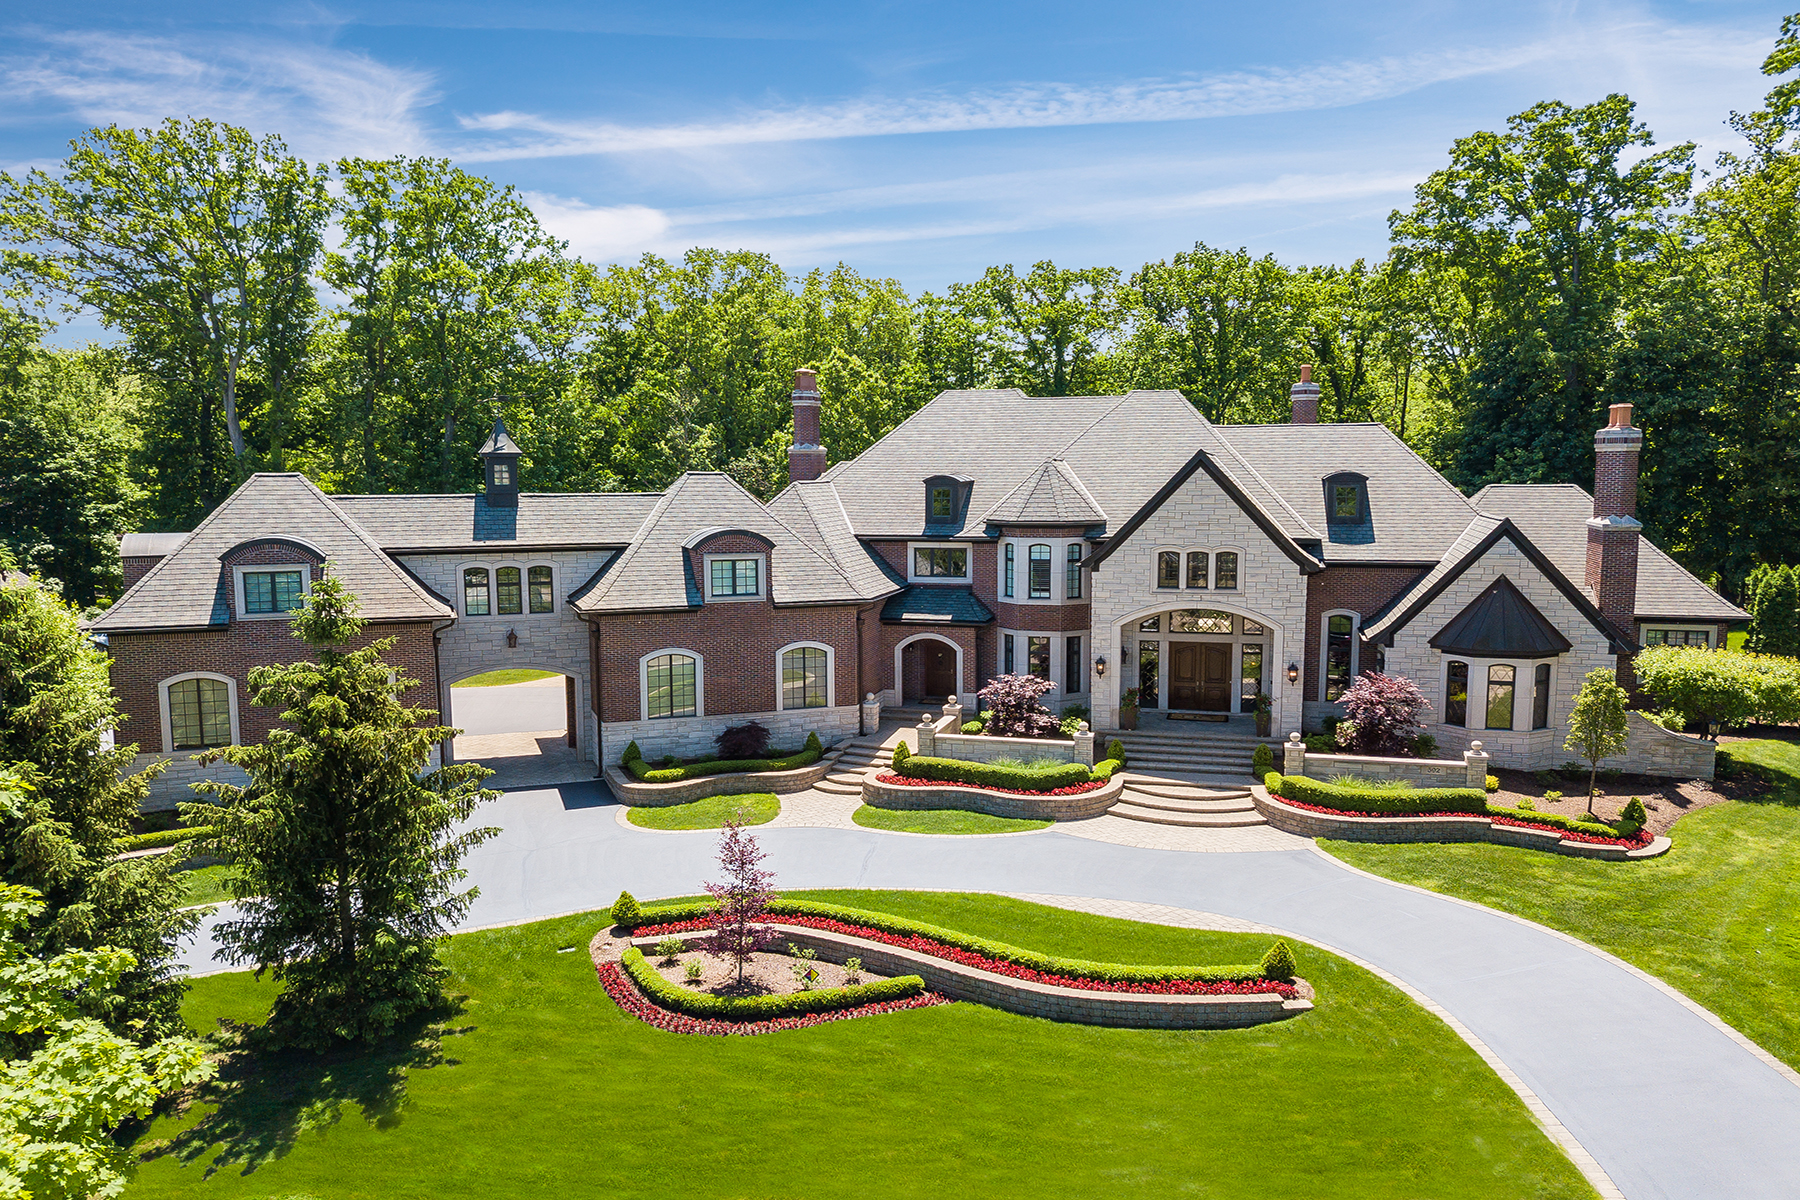 Single Family Homes for Active at Bloomfield Hills 592 Barrington Park Drive Bloomfield Hills, Michigan 48304 United States